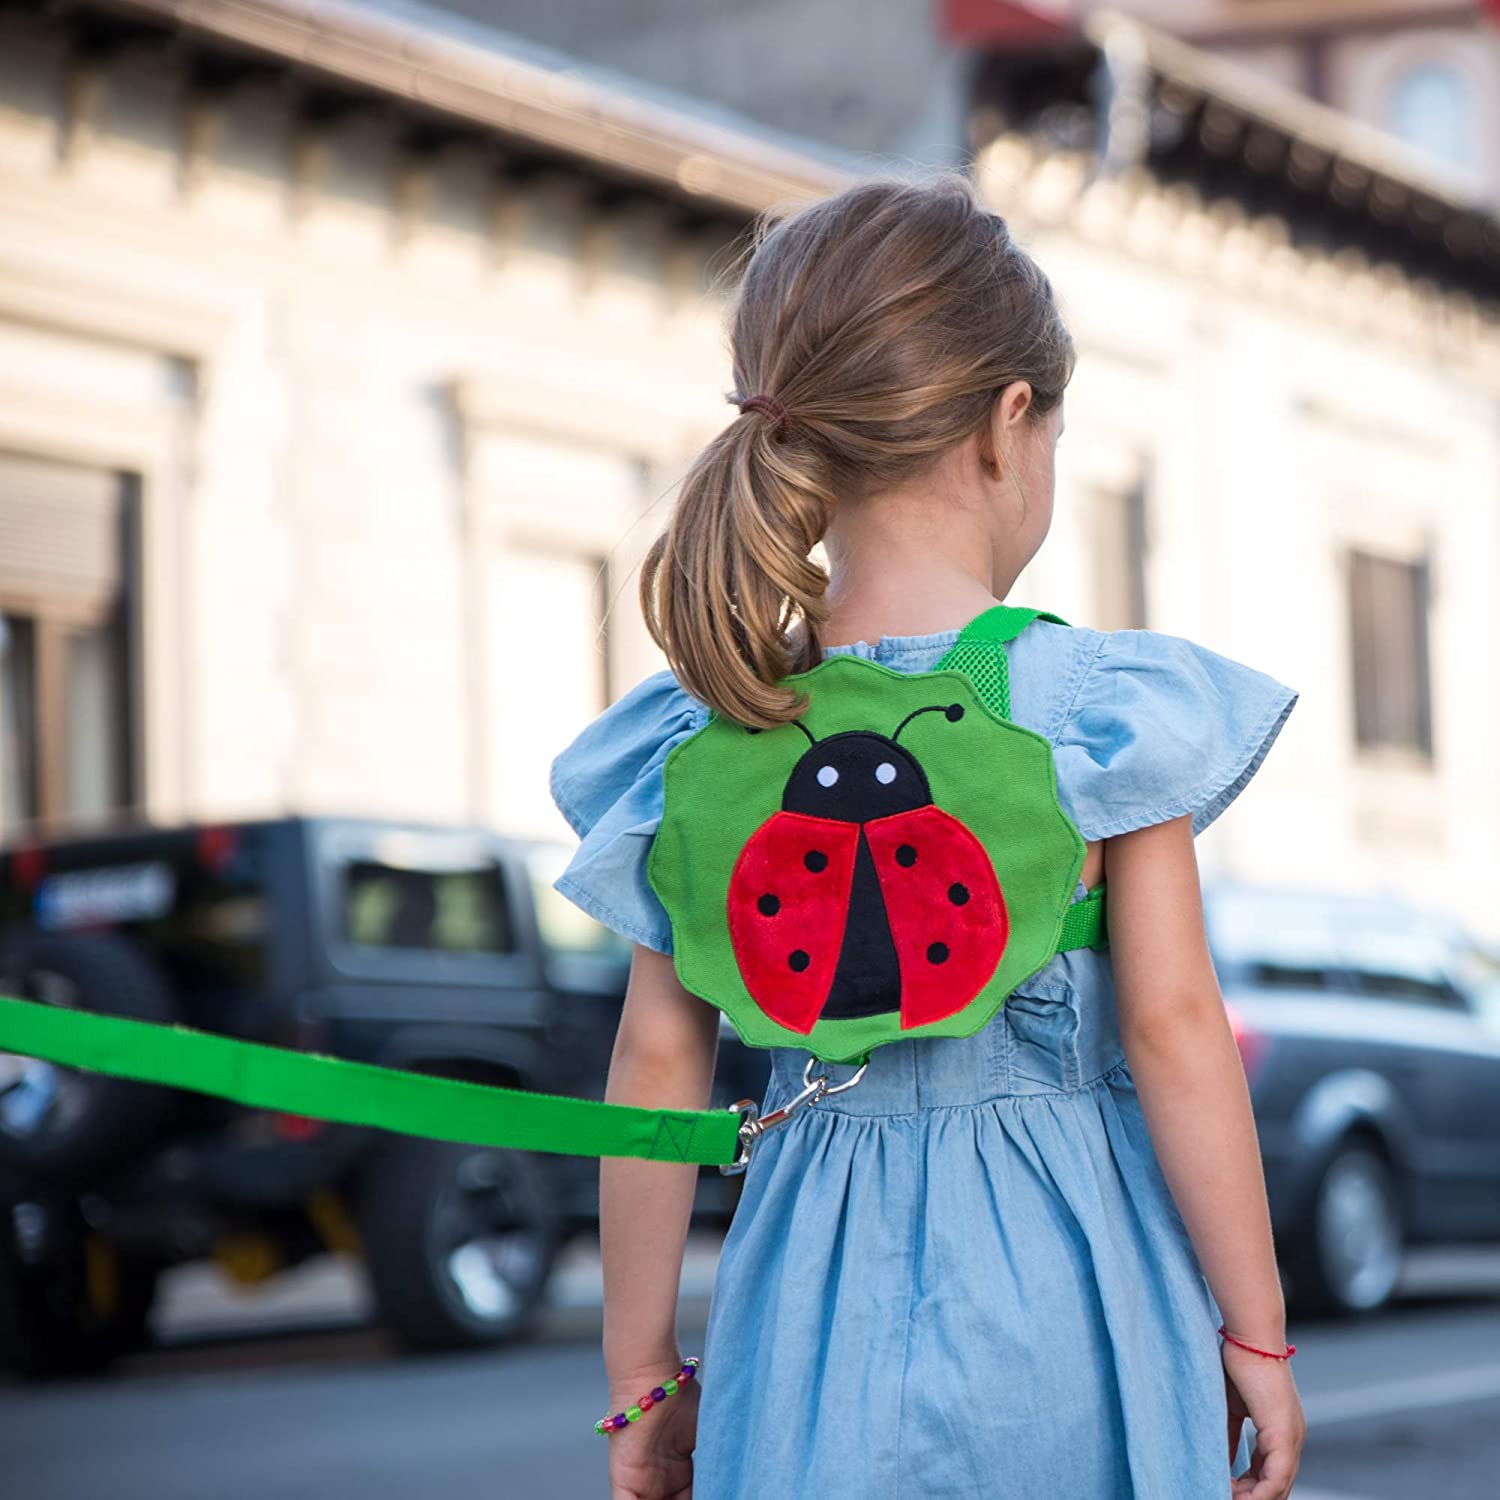 Child Leashes for Toddlers with Wrist Link - Cute Children Safety Harness Leash Kid Wristband Assistant Strap Belt with Anti Loss Wrist Link Safety Wrist Link for Toddlers 1-3 Years Old Boys and Girls